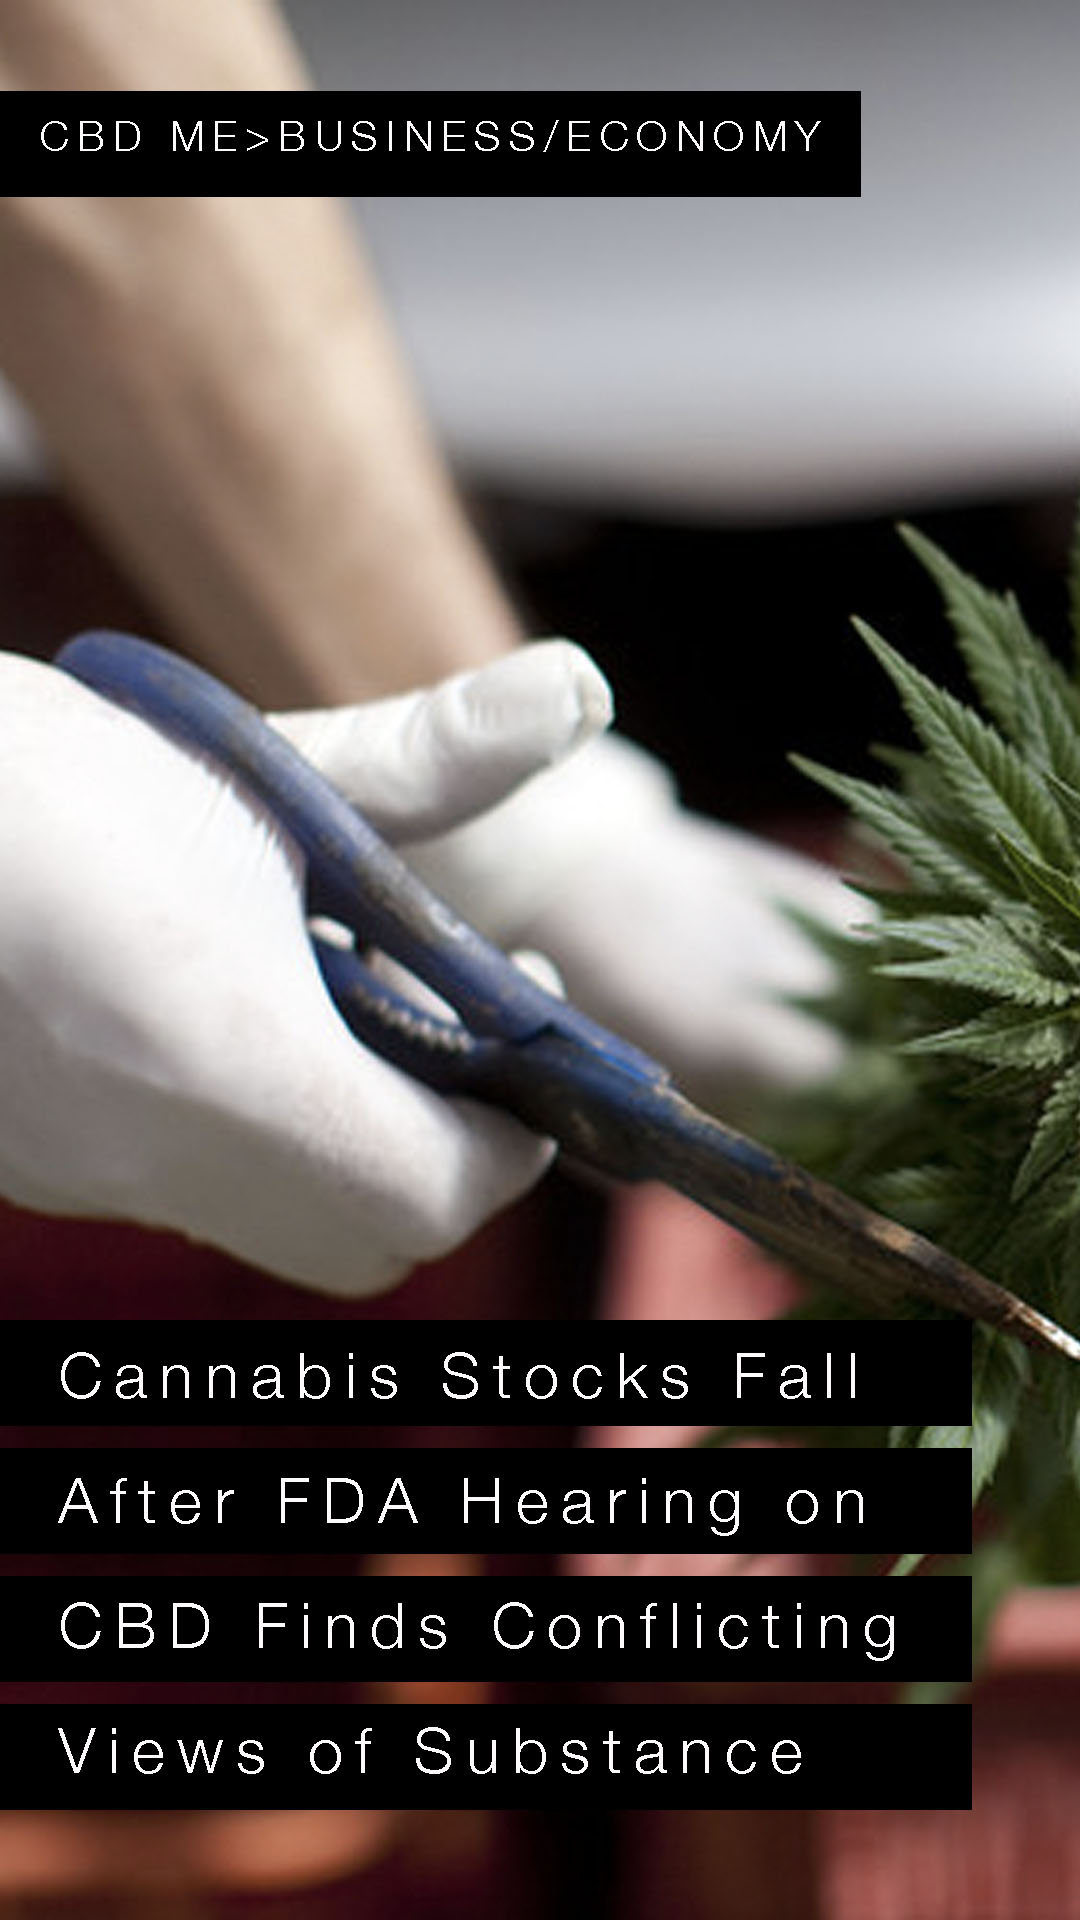 Cannabis Stocks Fall After FDA Hearing on CBD Finds Conflicting Views of Substance | MARKET WATCH